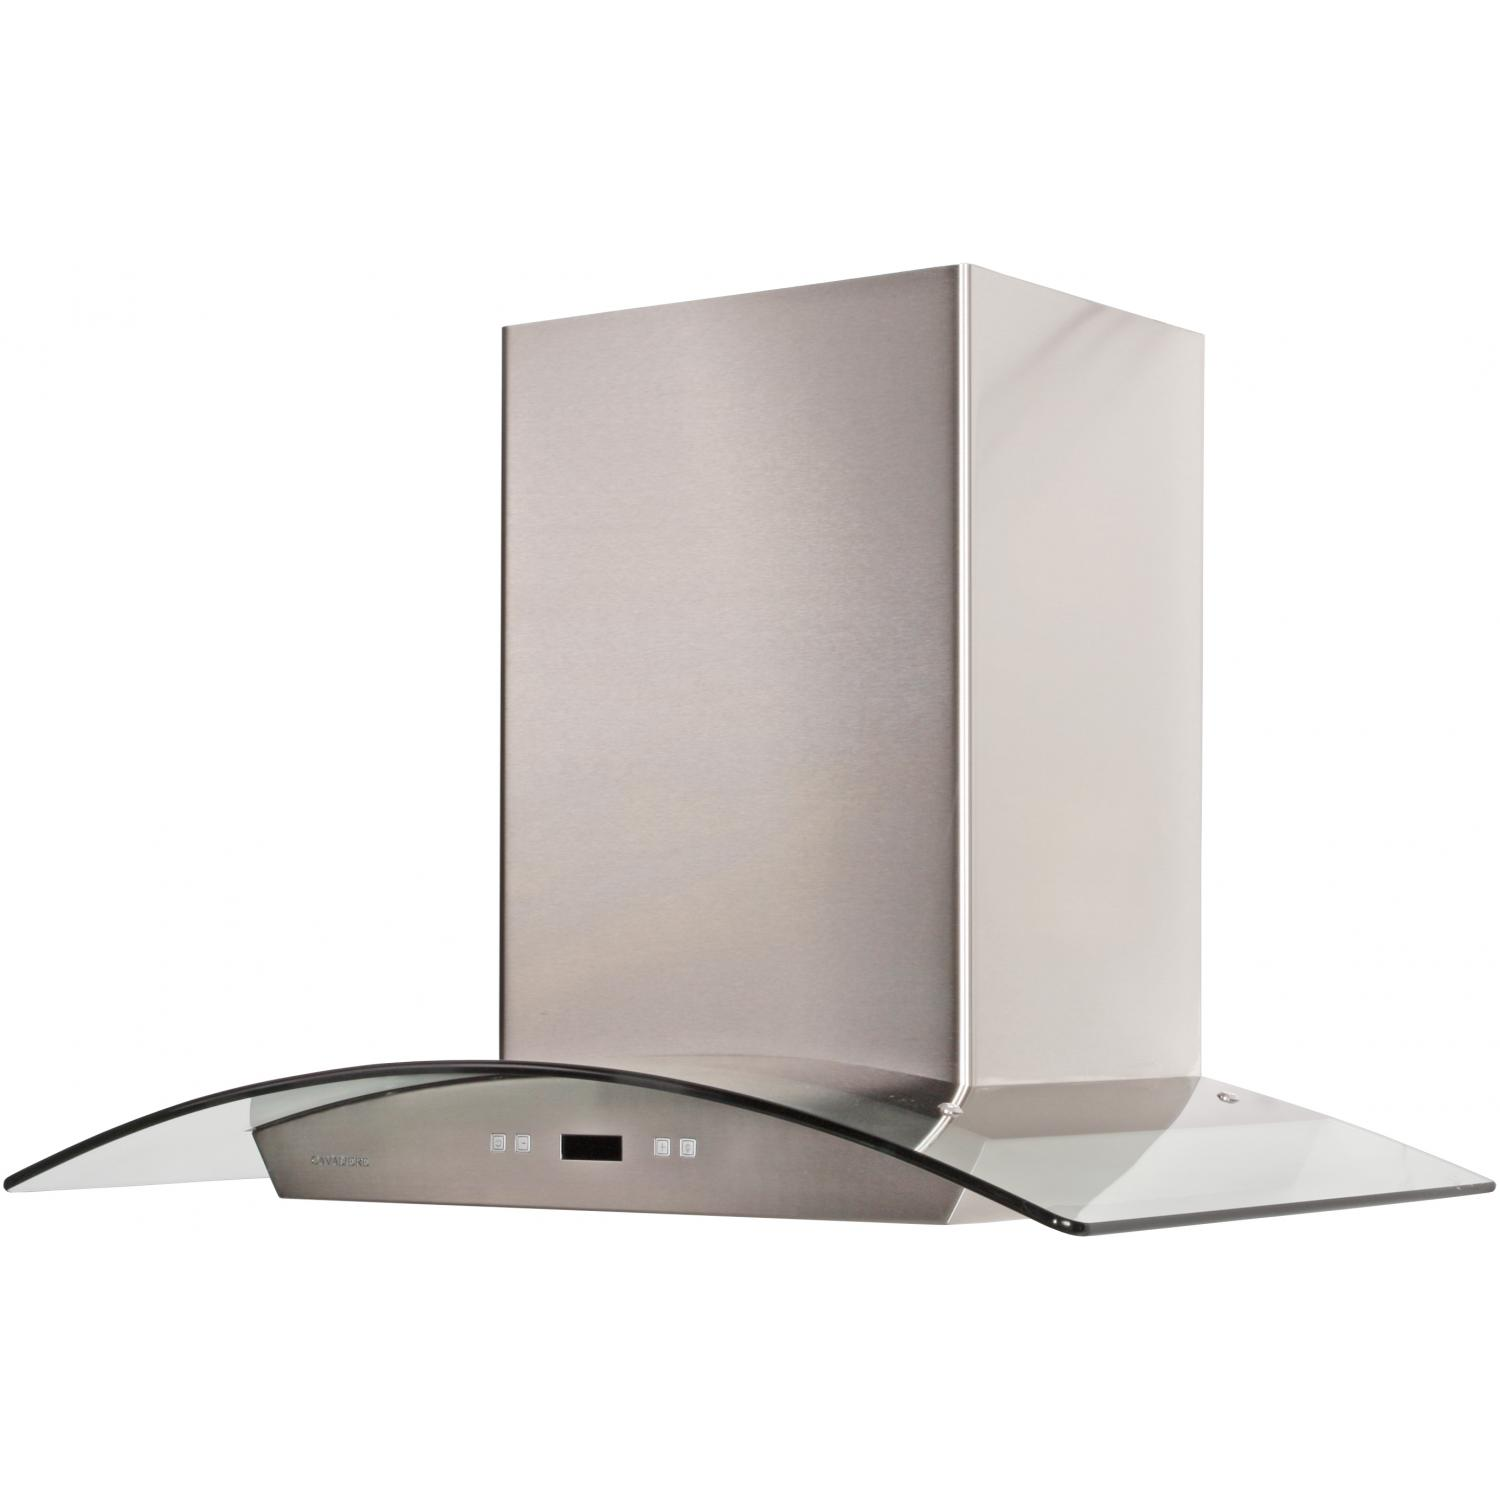 Cavaliere 36-Inch 900 CFM Wall Mounted Range Hood With Glass Canopy - SV218D